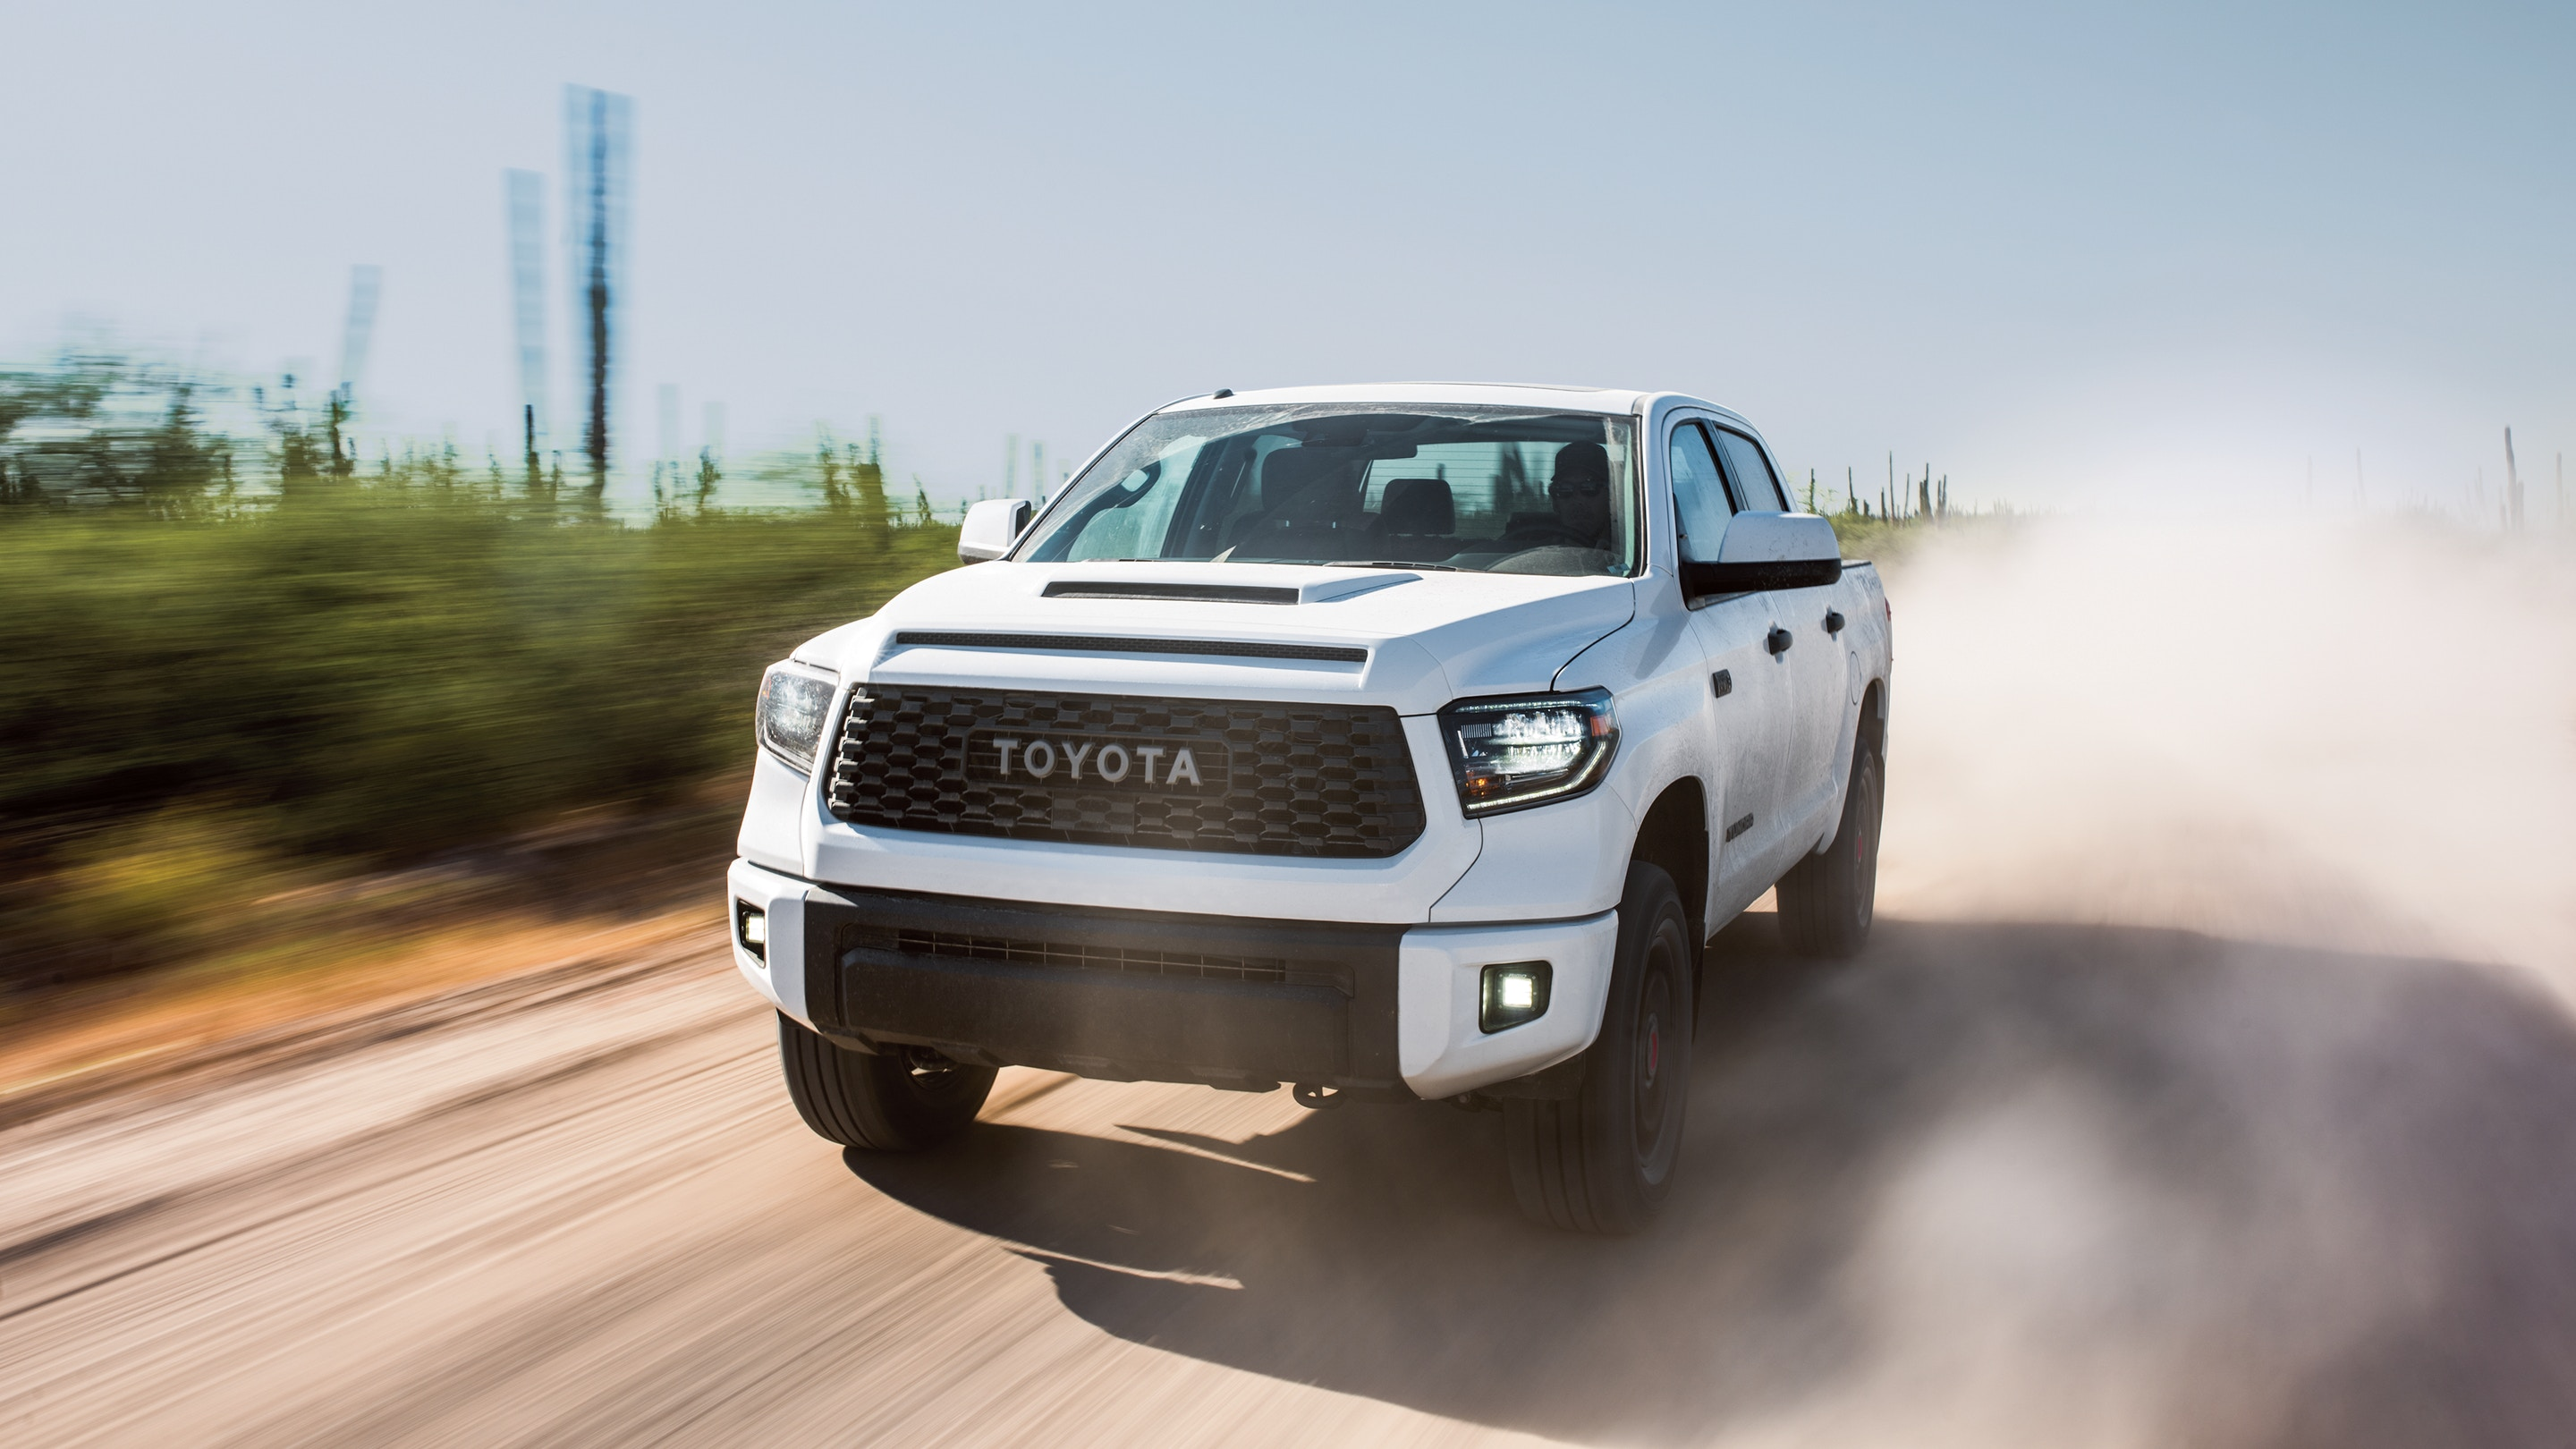 2019 Toyota Tundra for Sale near Bonnots Mill, MO